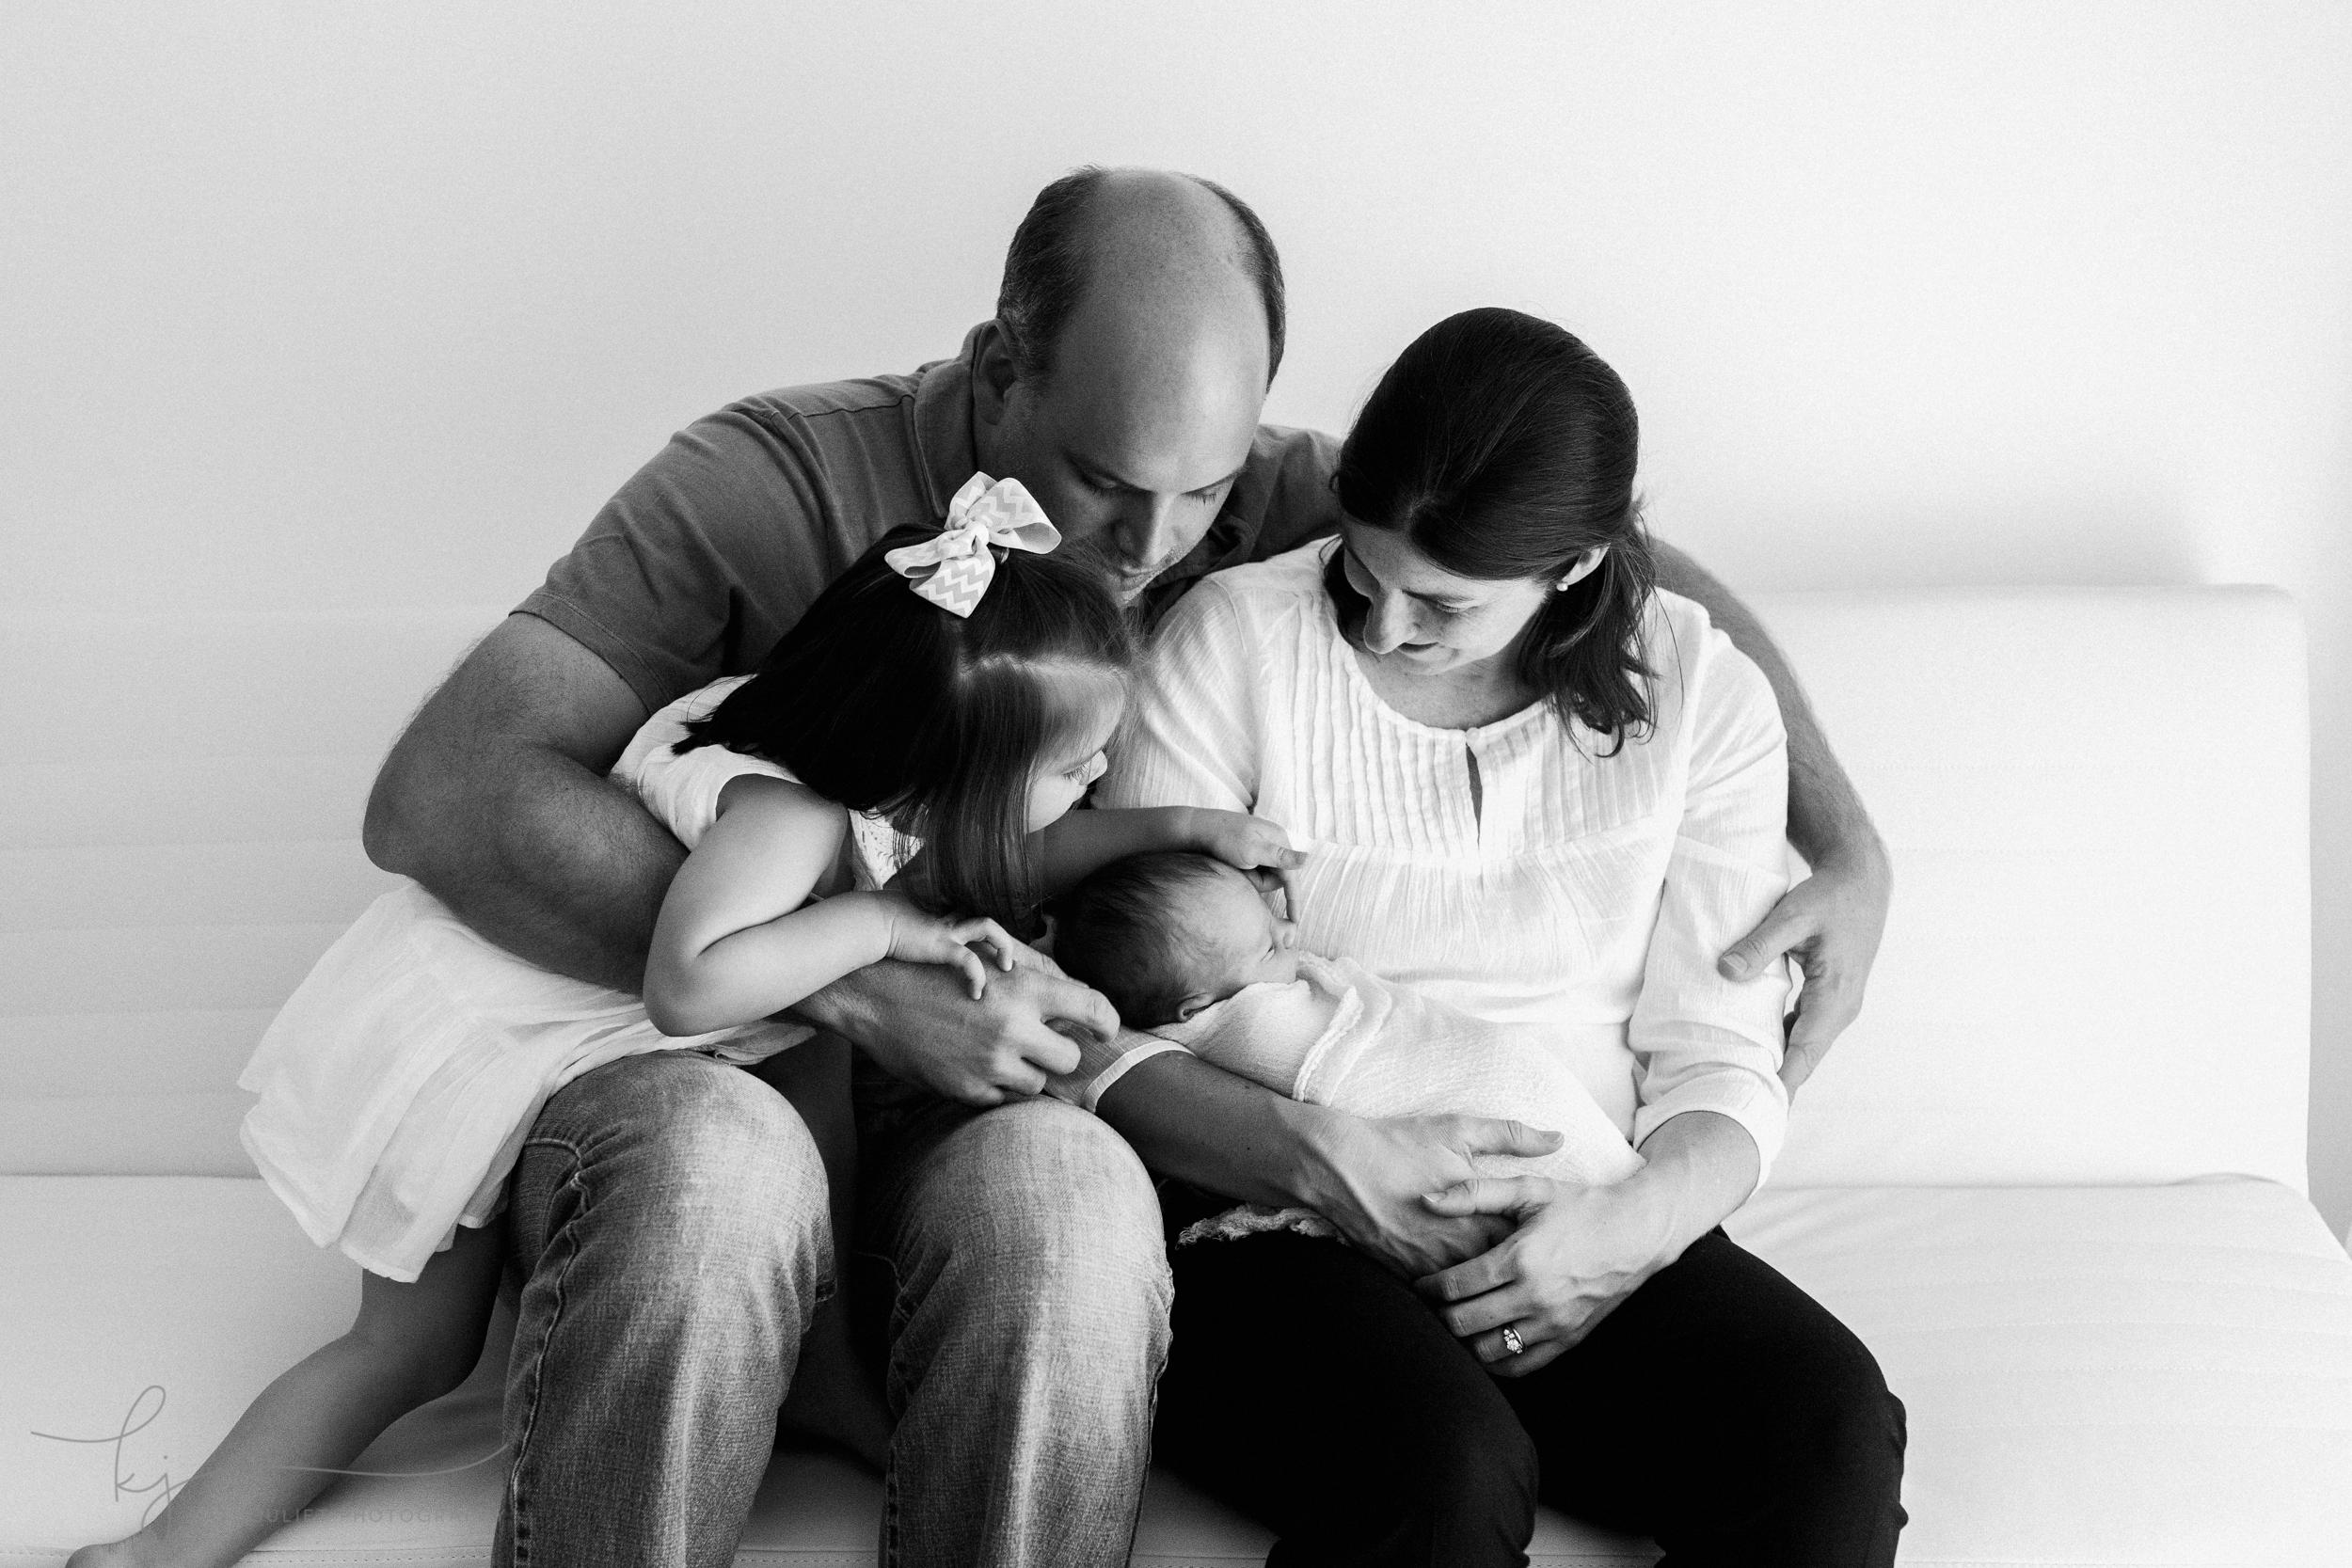 kate_juliet_photography_arlington_newborn_wm-059254-2.jpg